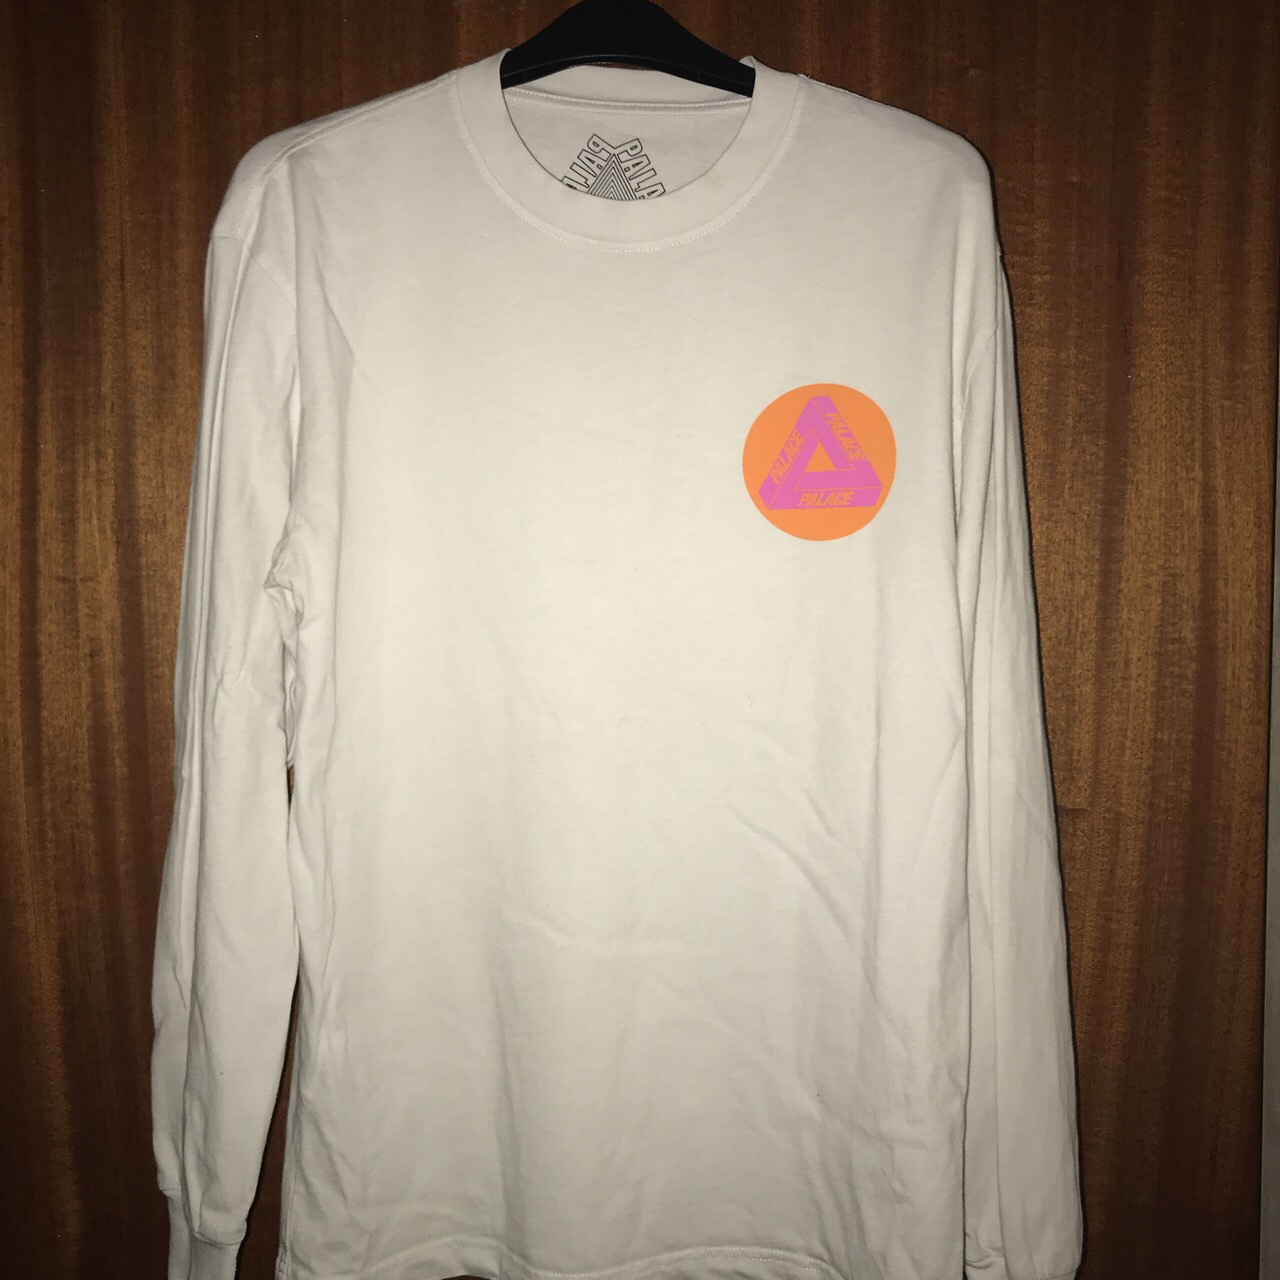 93a69356 leoncalvin123. Southend-on-Sea, United Kingdom. Palace Multi P White  longsleeve t shirt Size small 9/10 condition hardly been ...